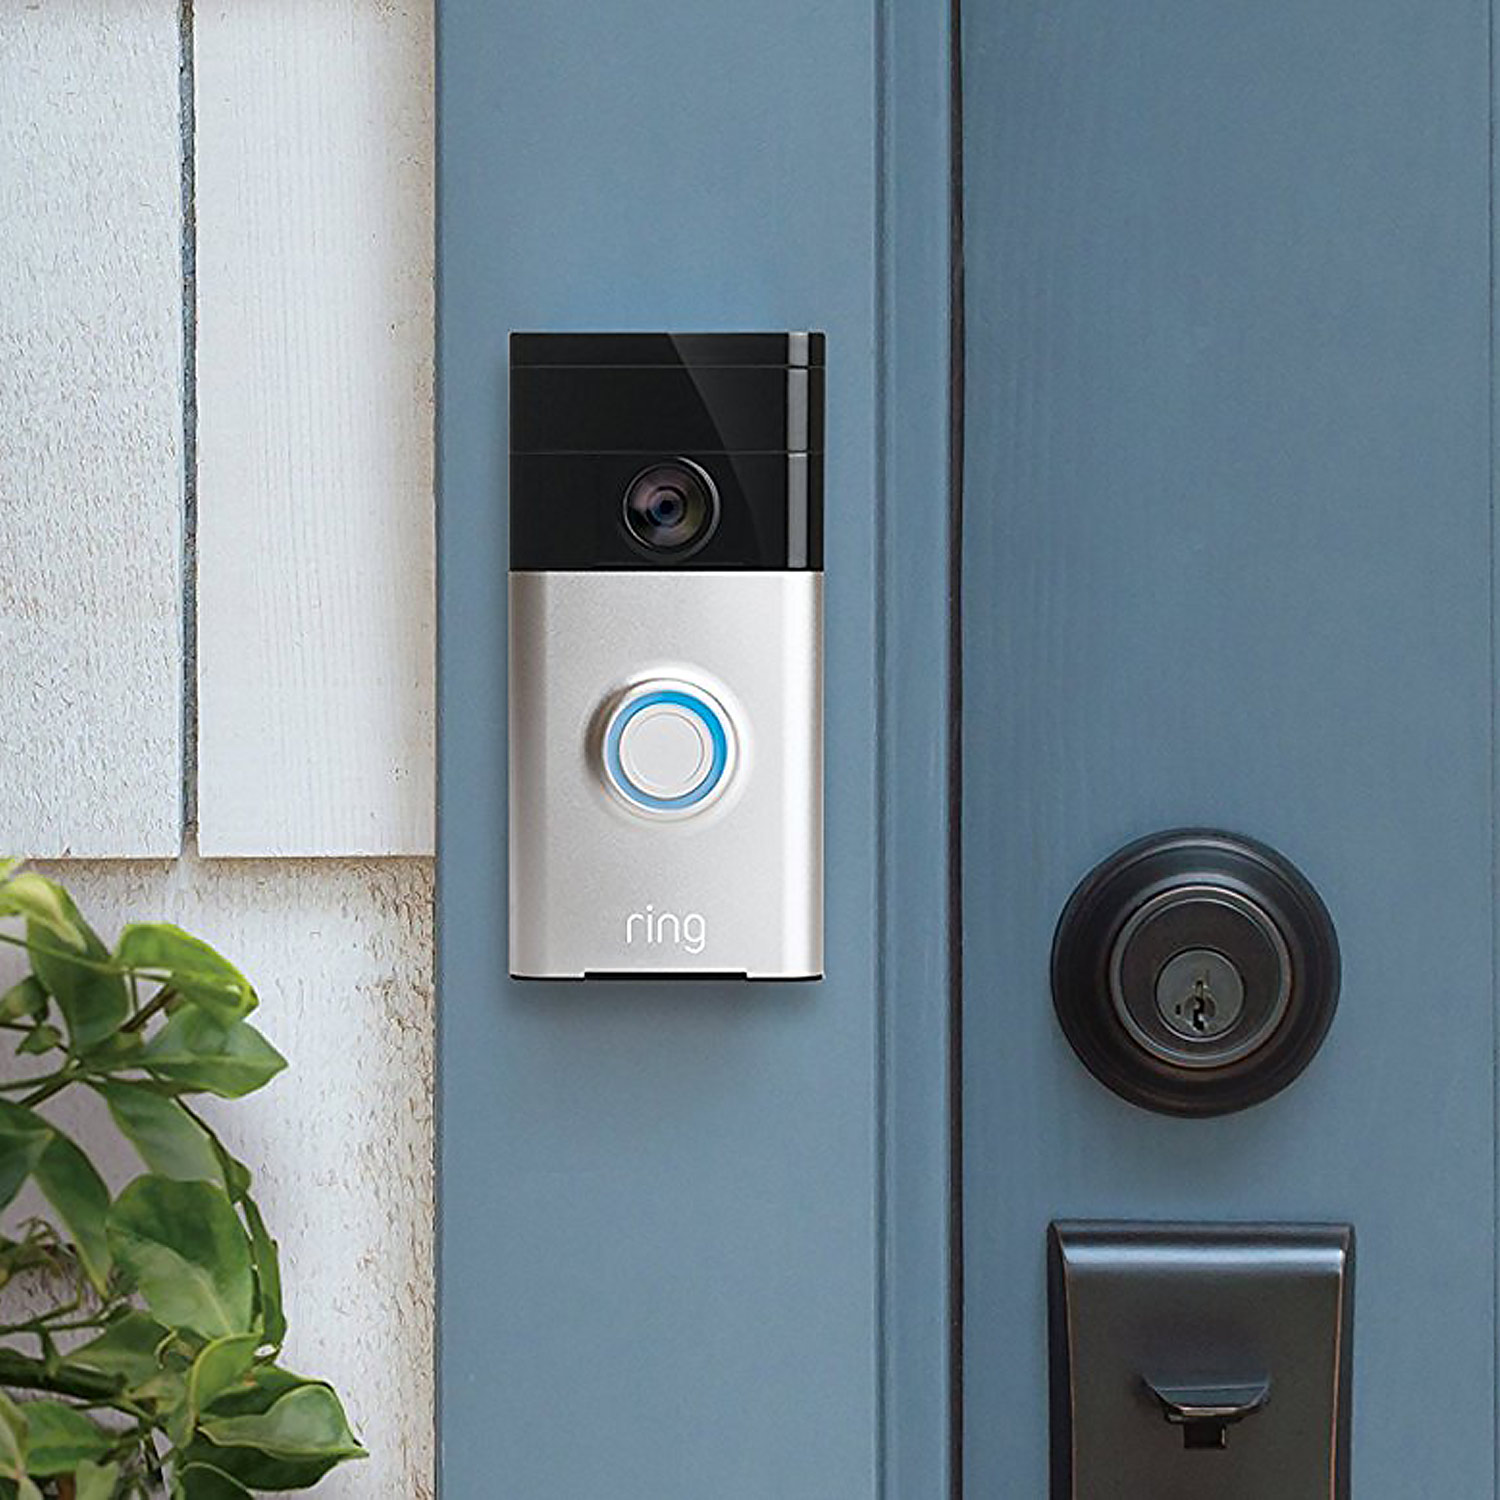 doorbell ring video wifi t rklingel klingel t r sprechanlage f r amazon alexa 852239005772 ebay. Black Bedroom Furniture Sets. Home Design Ideas